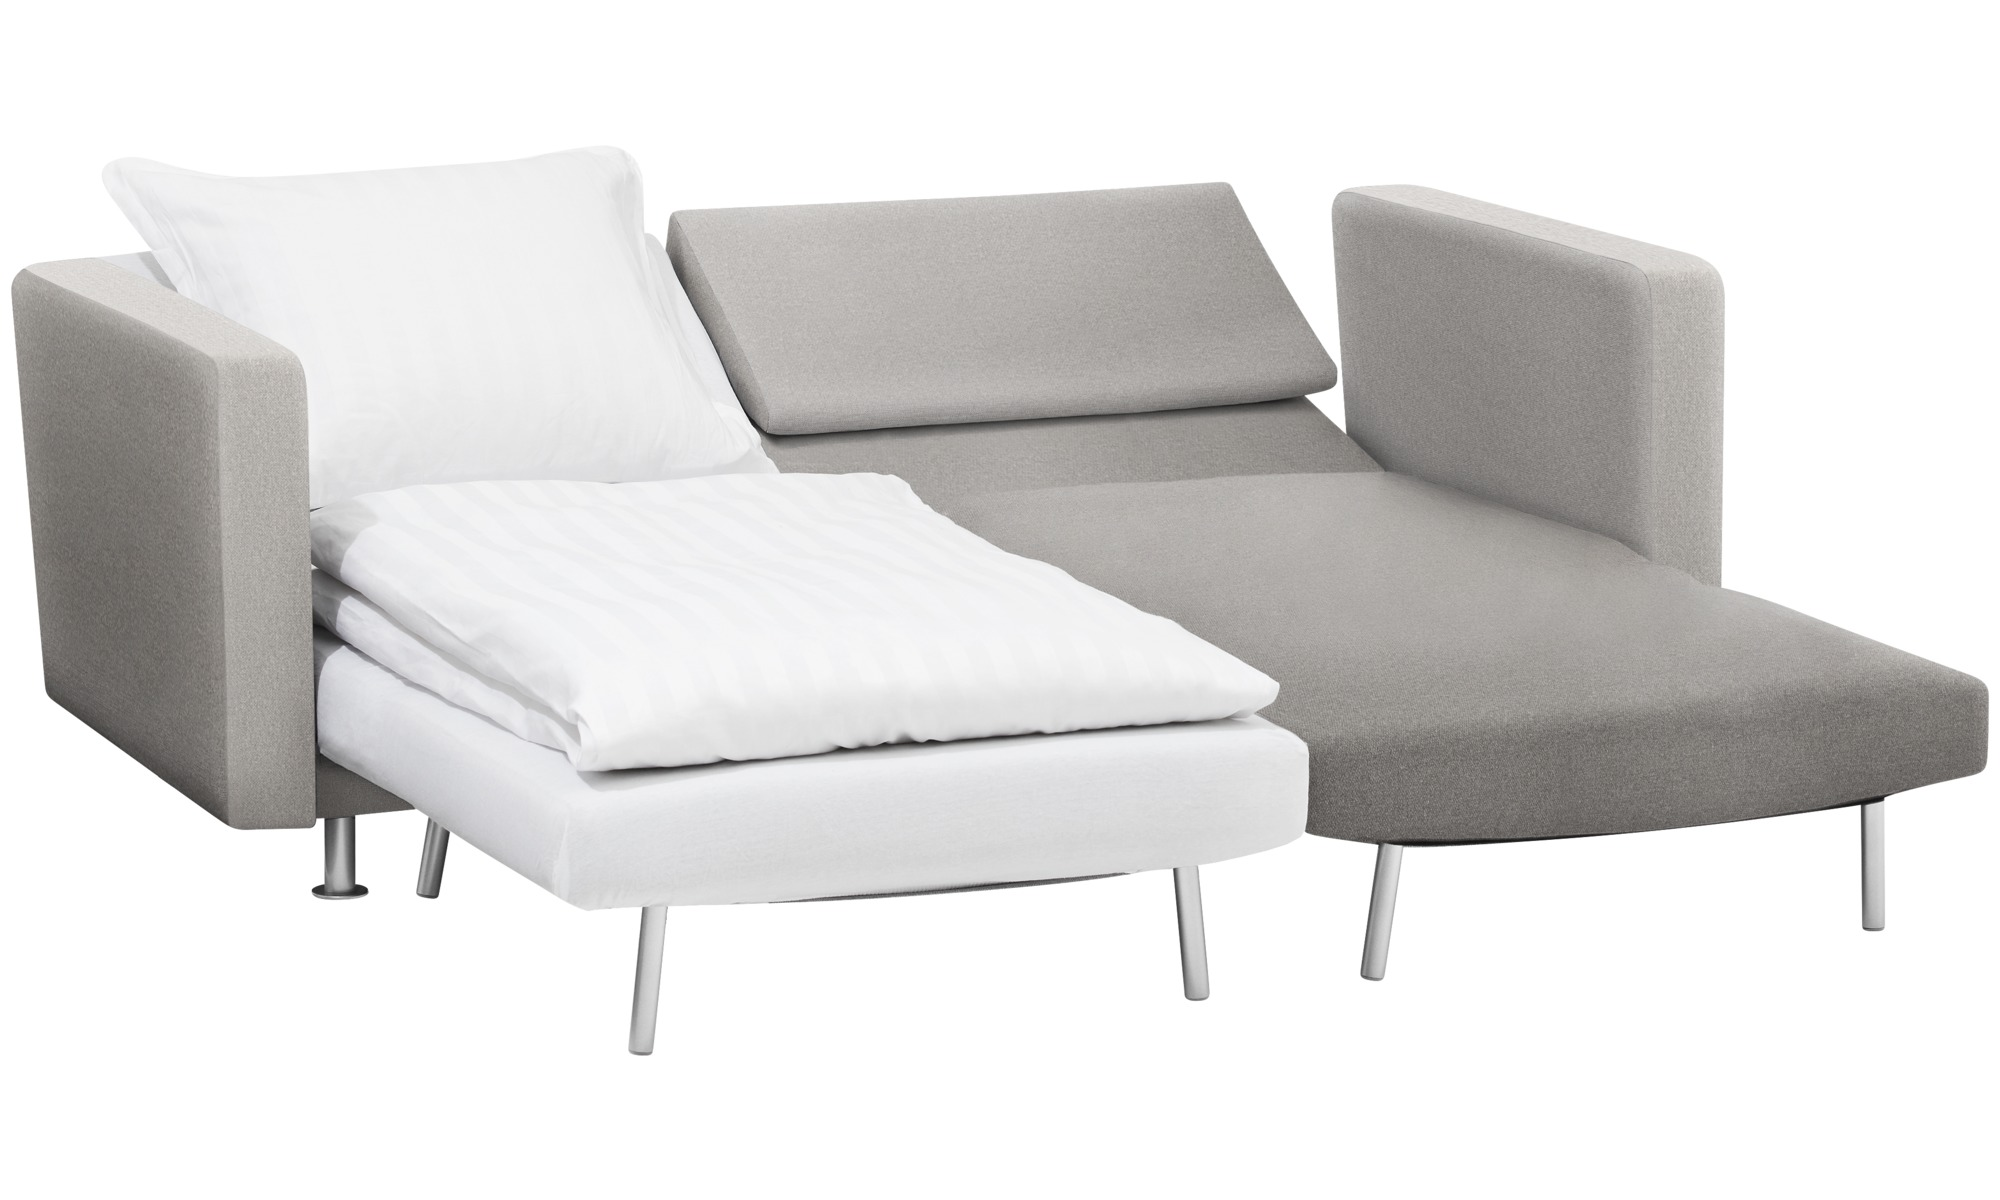 sofa beds - melo 2 sofa with reclining and sleeping function